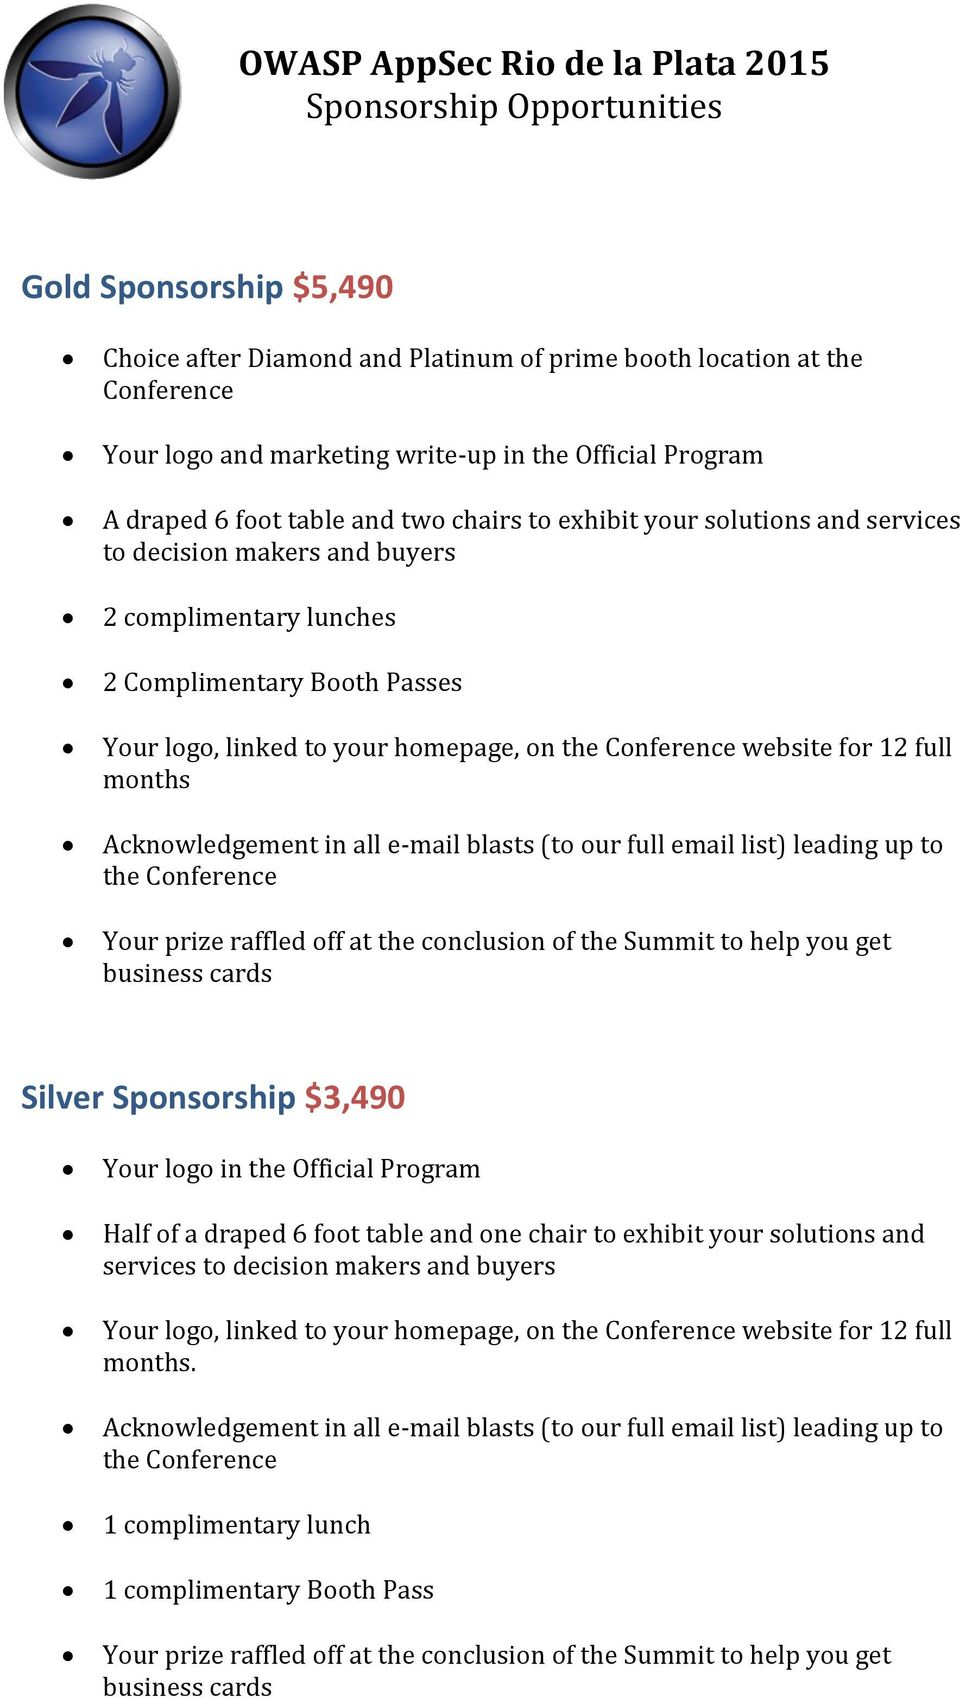 Passes Your logo, linked to your homepage, on website for 12 full months Silver Sponsorship $3,490 Half of a draped 6 foot table and one chair to exhibit